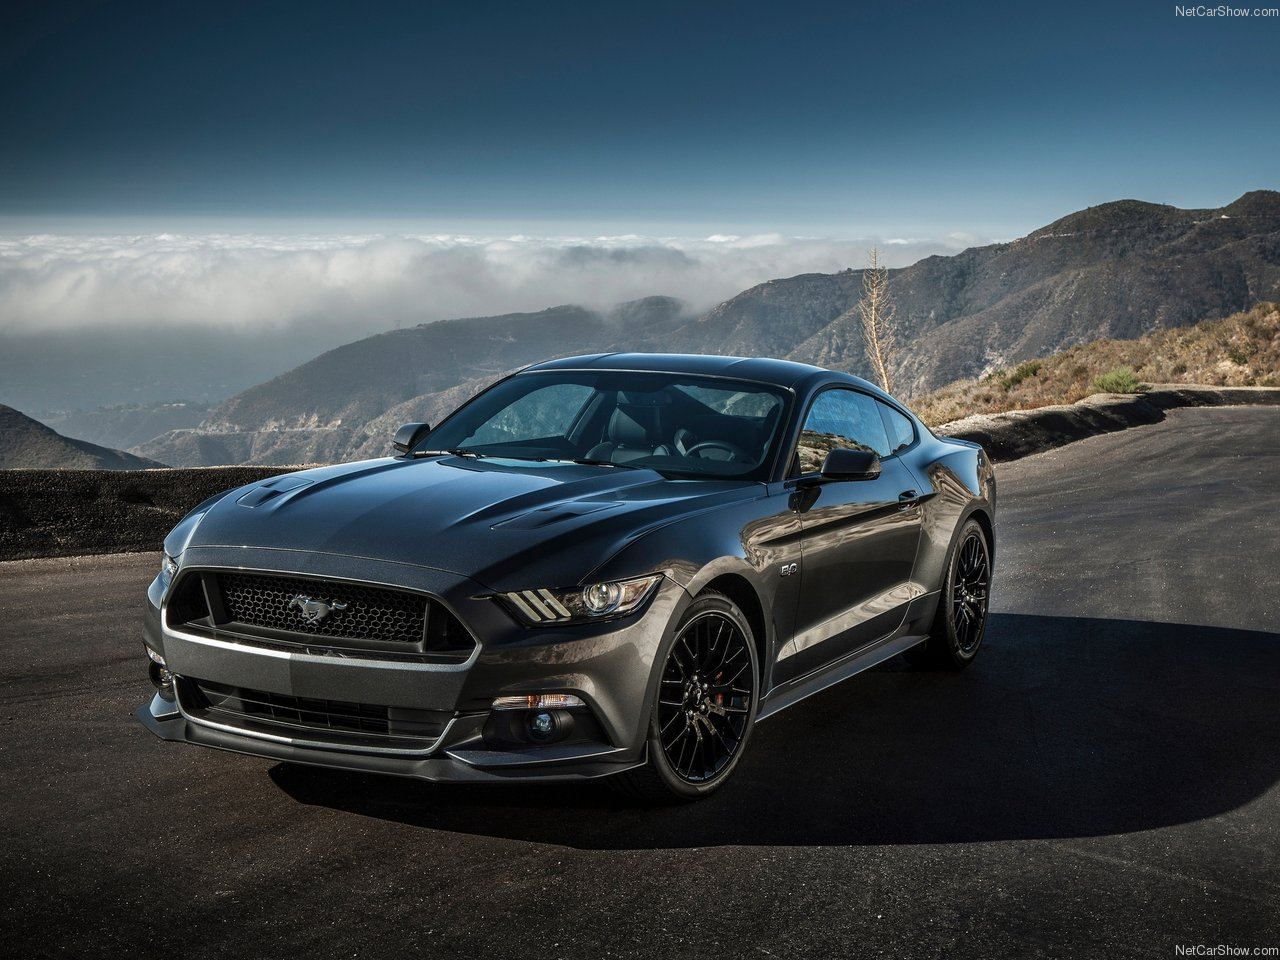 Ford Mustang GT 2015   Tire on Road 1280x960